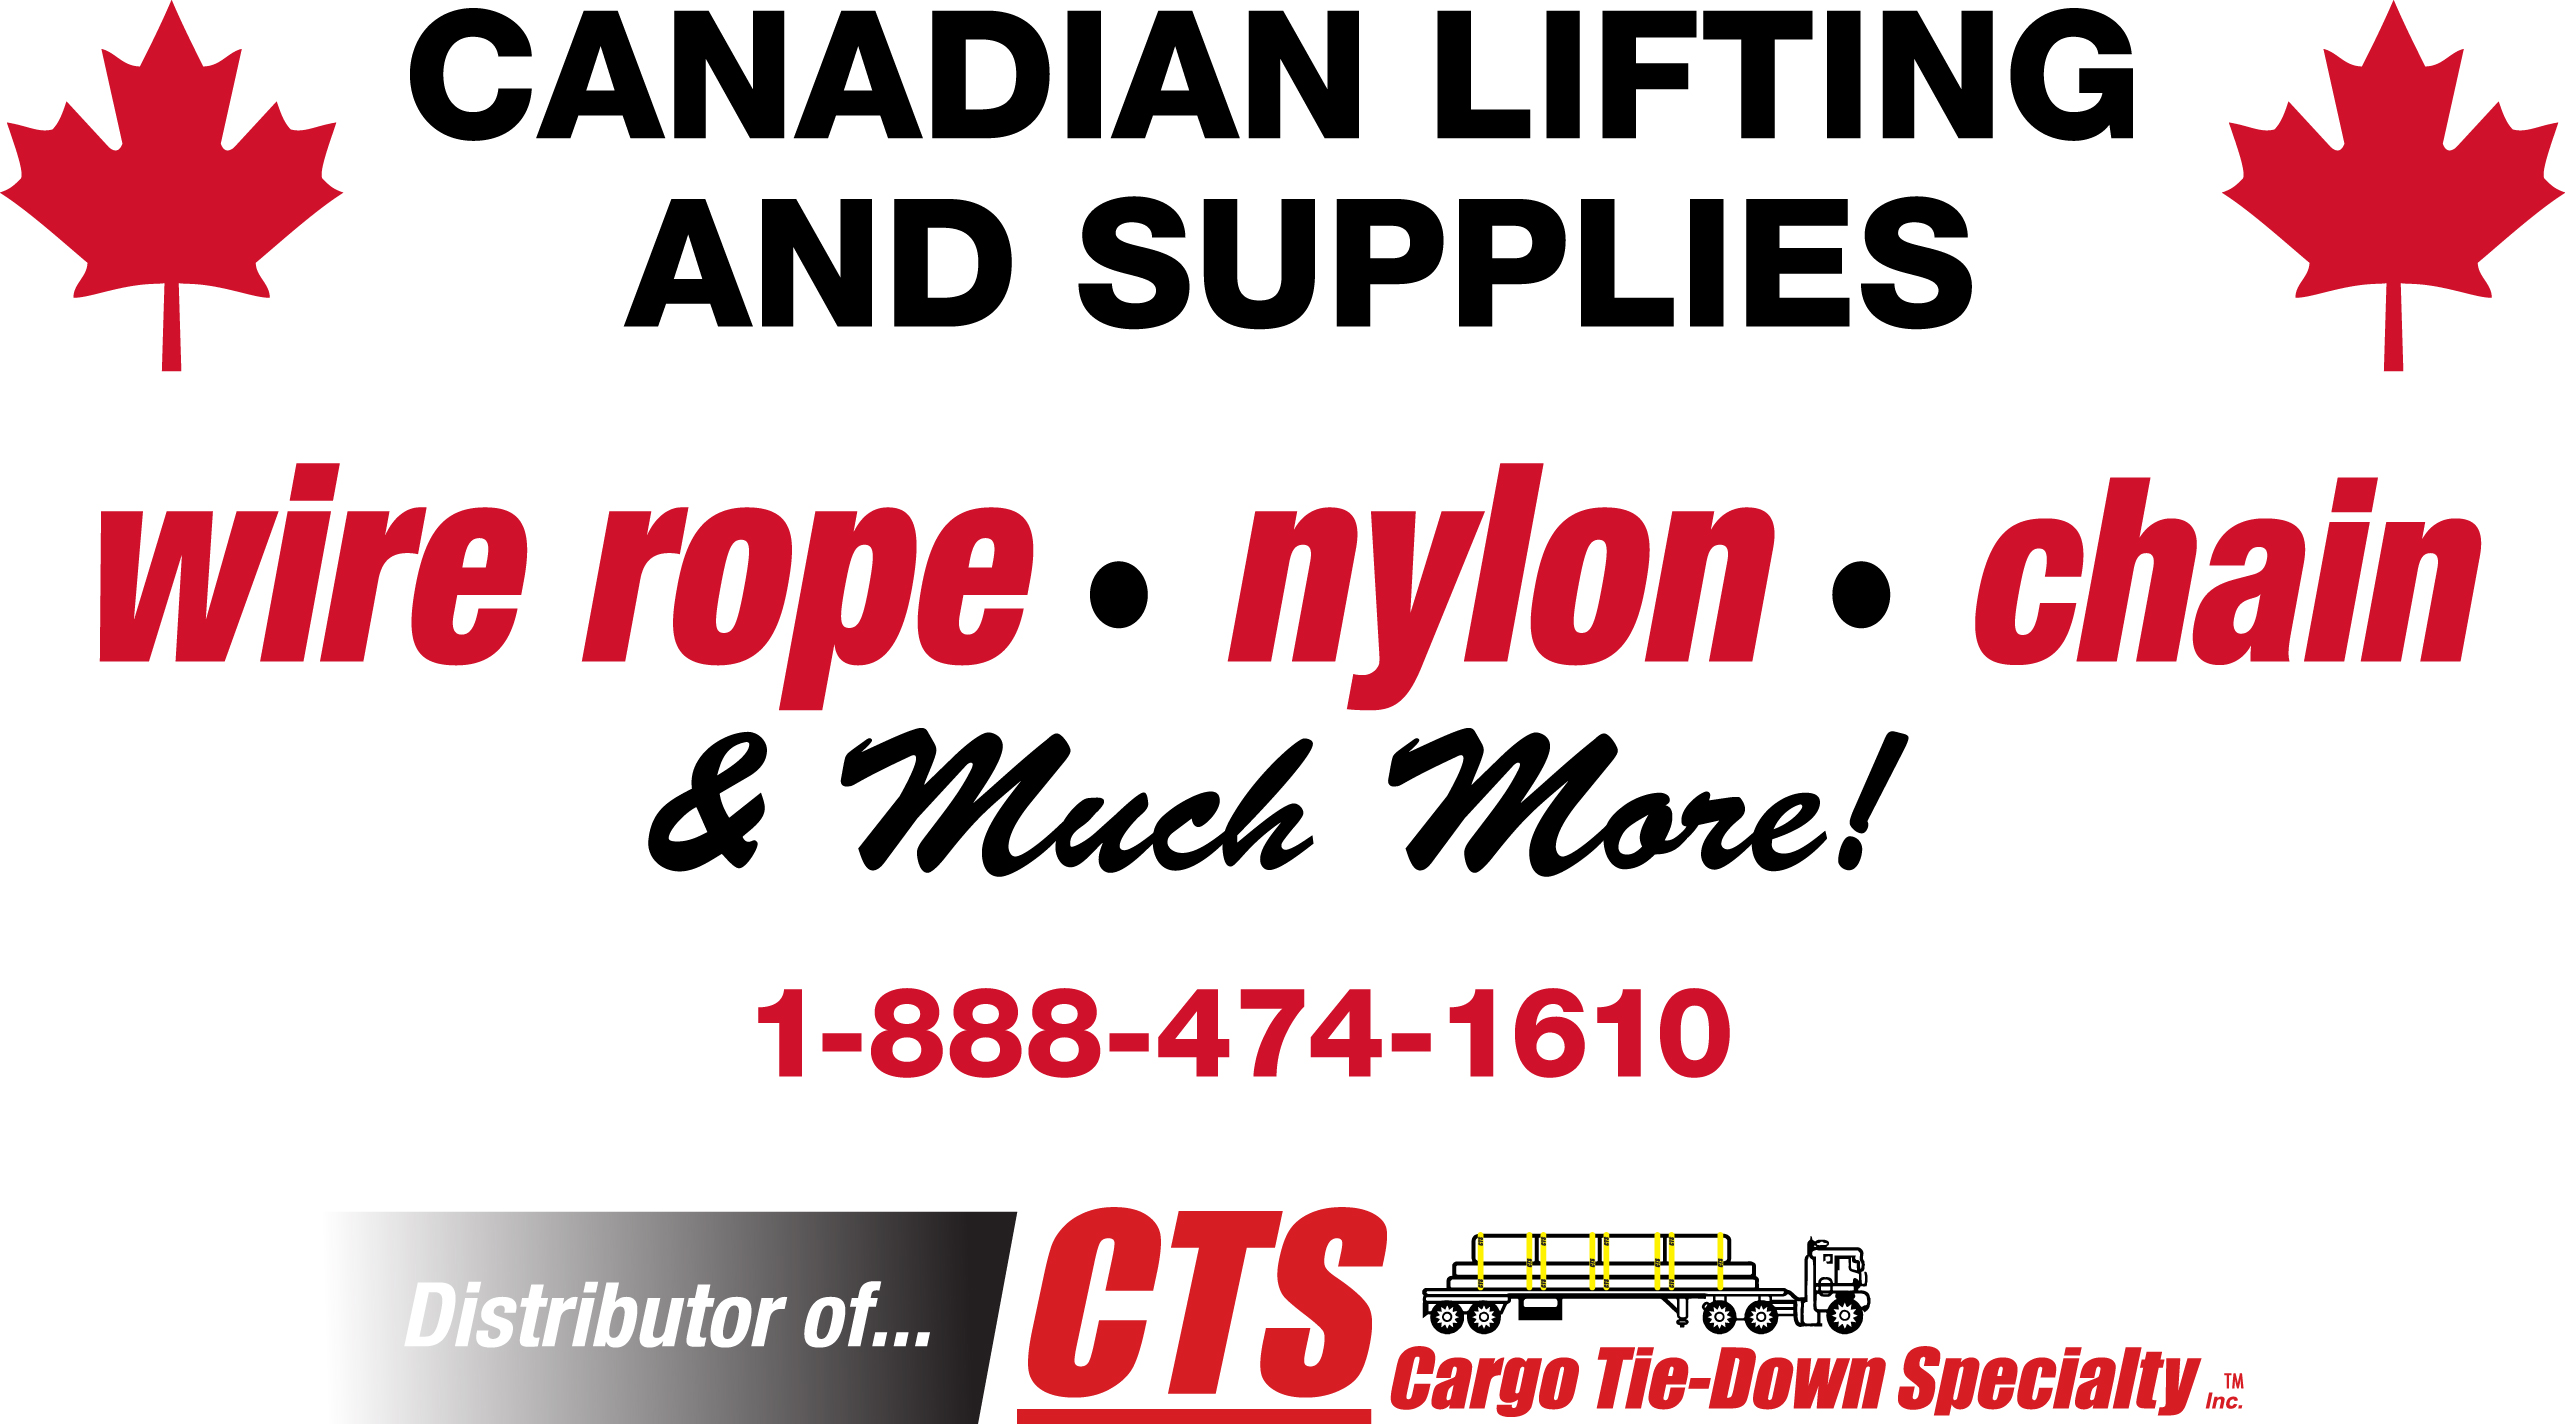 Canadian Lifting and Supplies